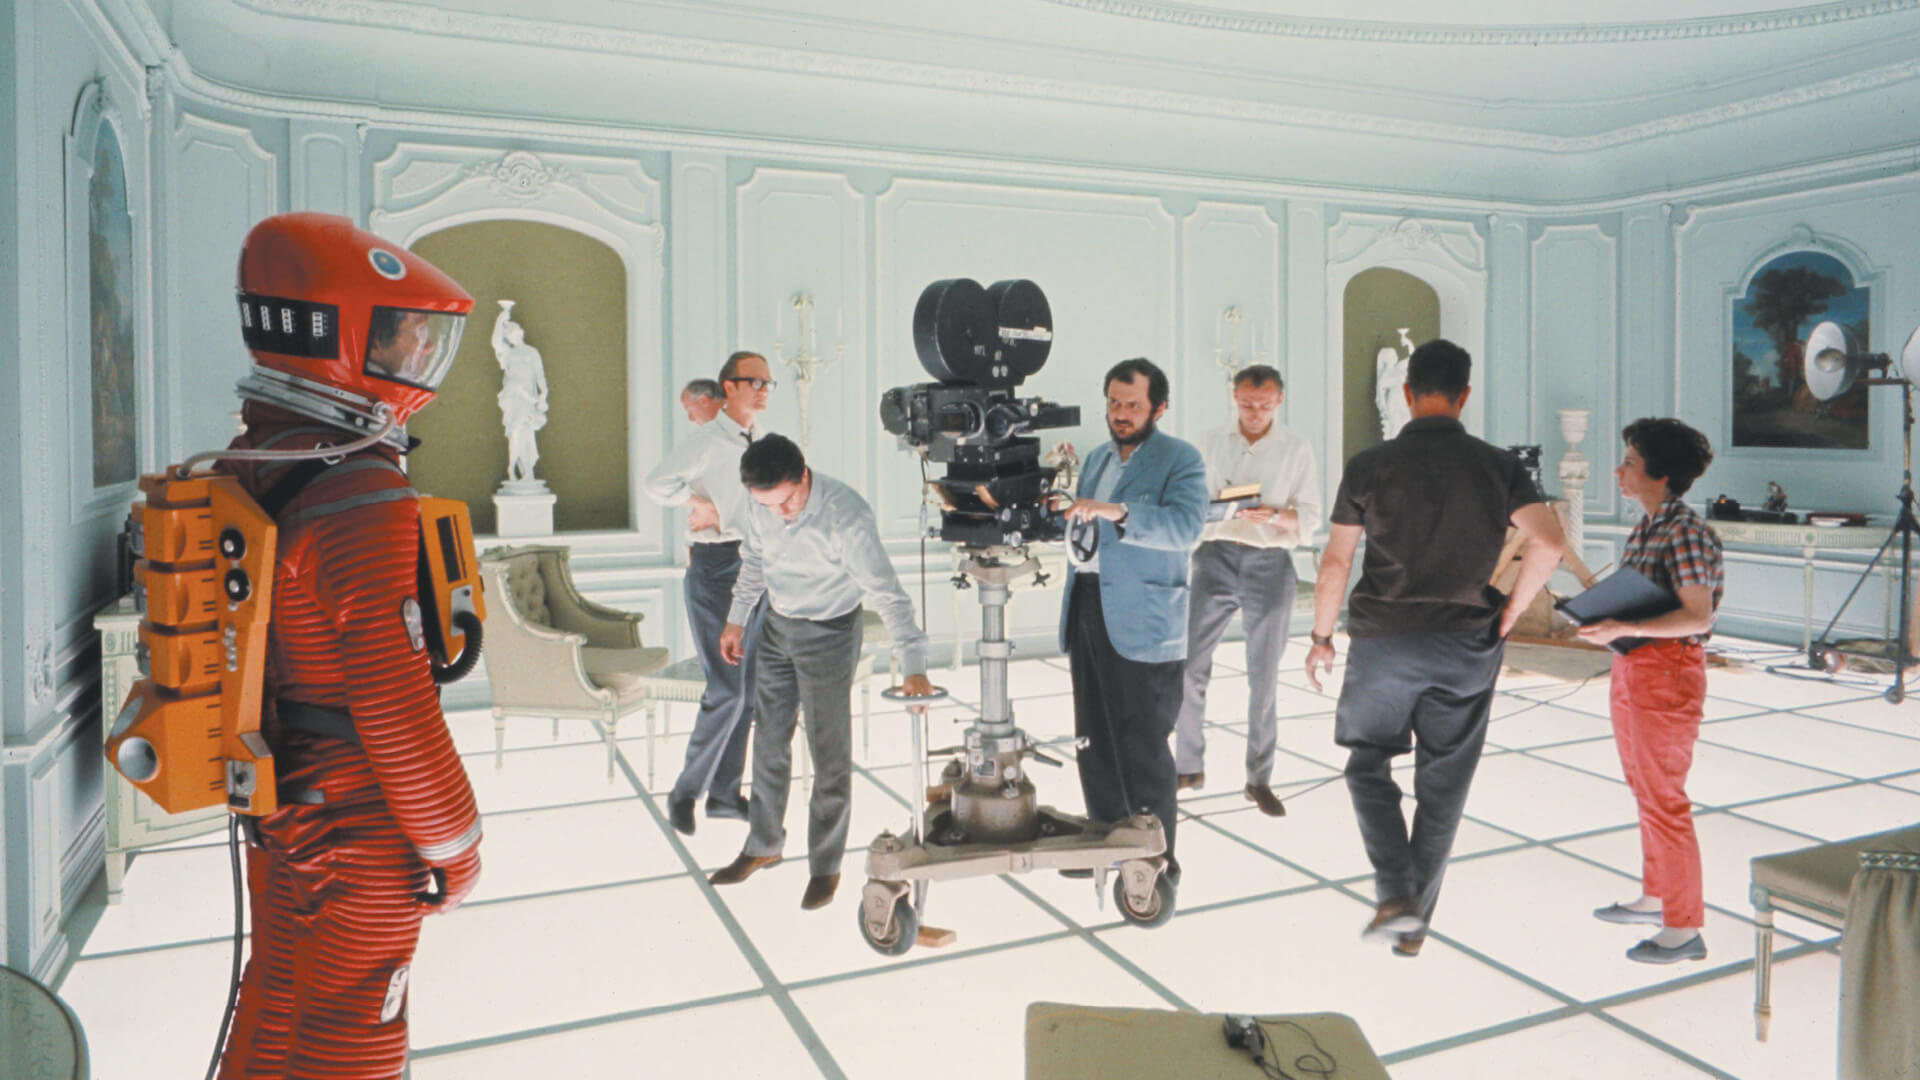 On the Hotel Room set of 2001: A Space Odyssey (1968, Dir. Stanley Kubrick) | Space Odyssey exhibition | Stanley Kubrick | STIRworld